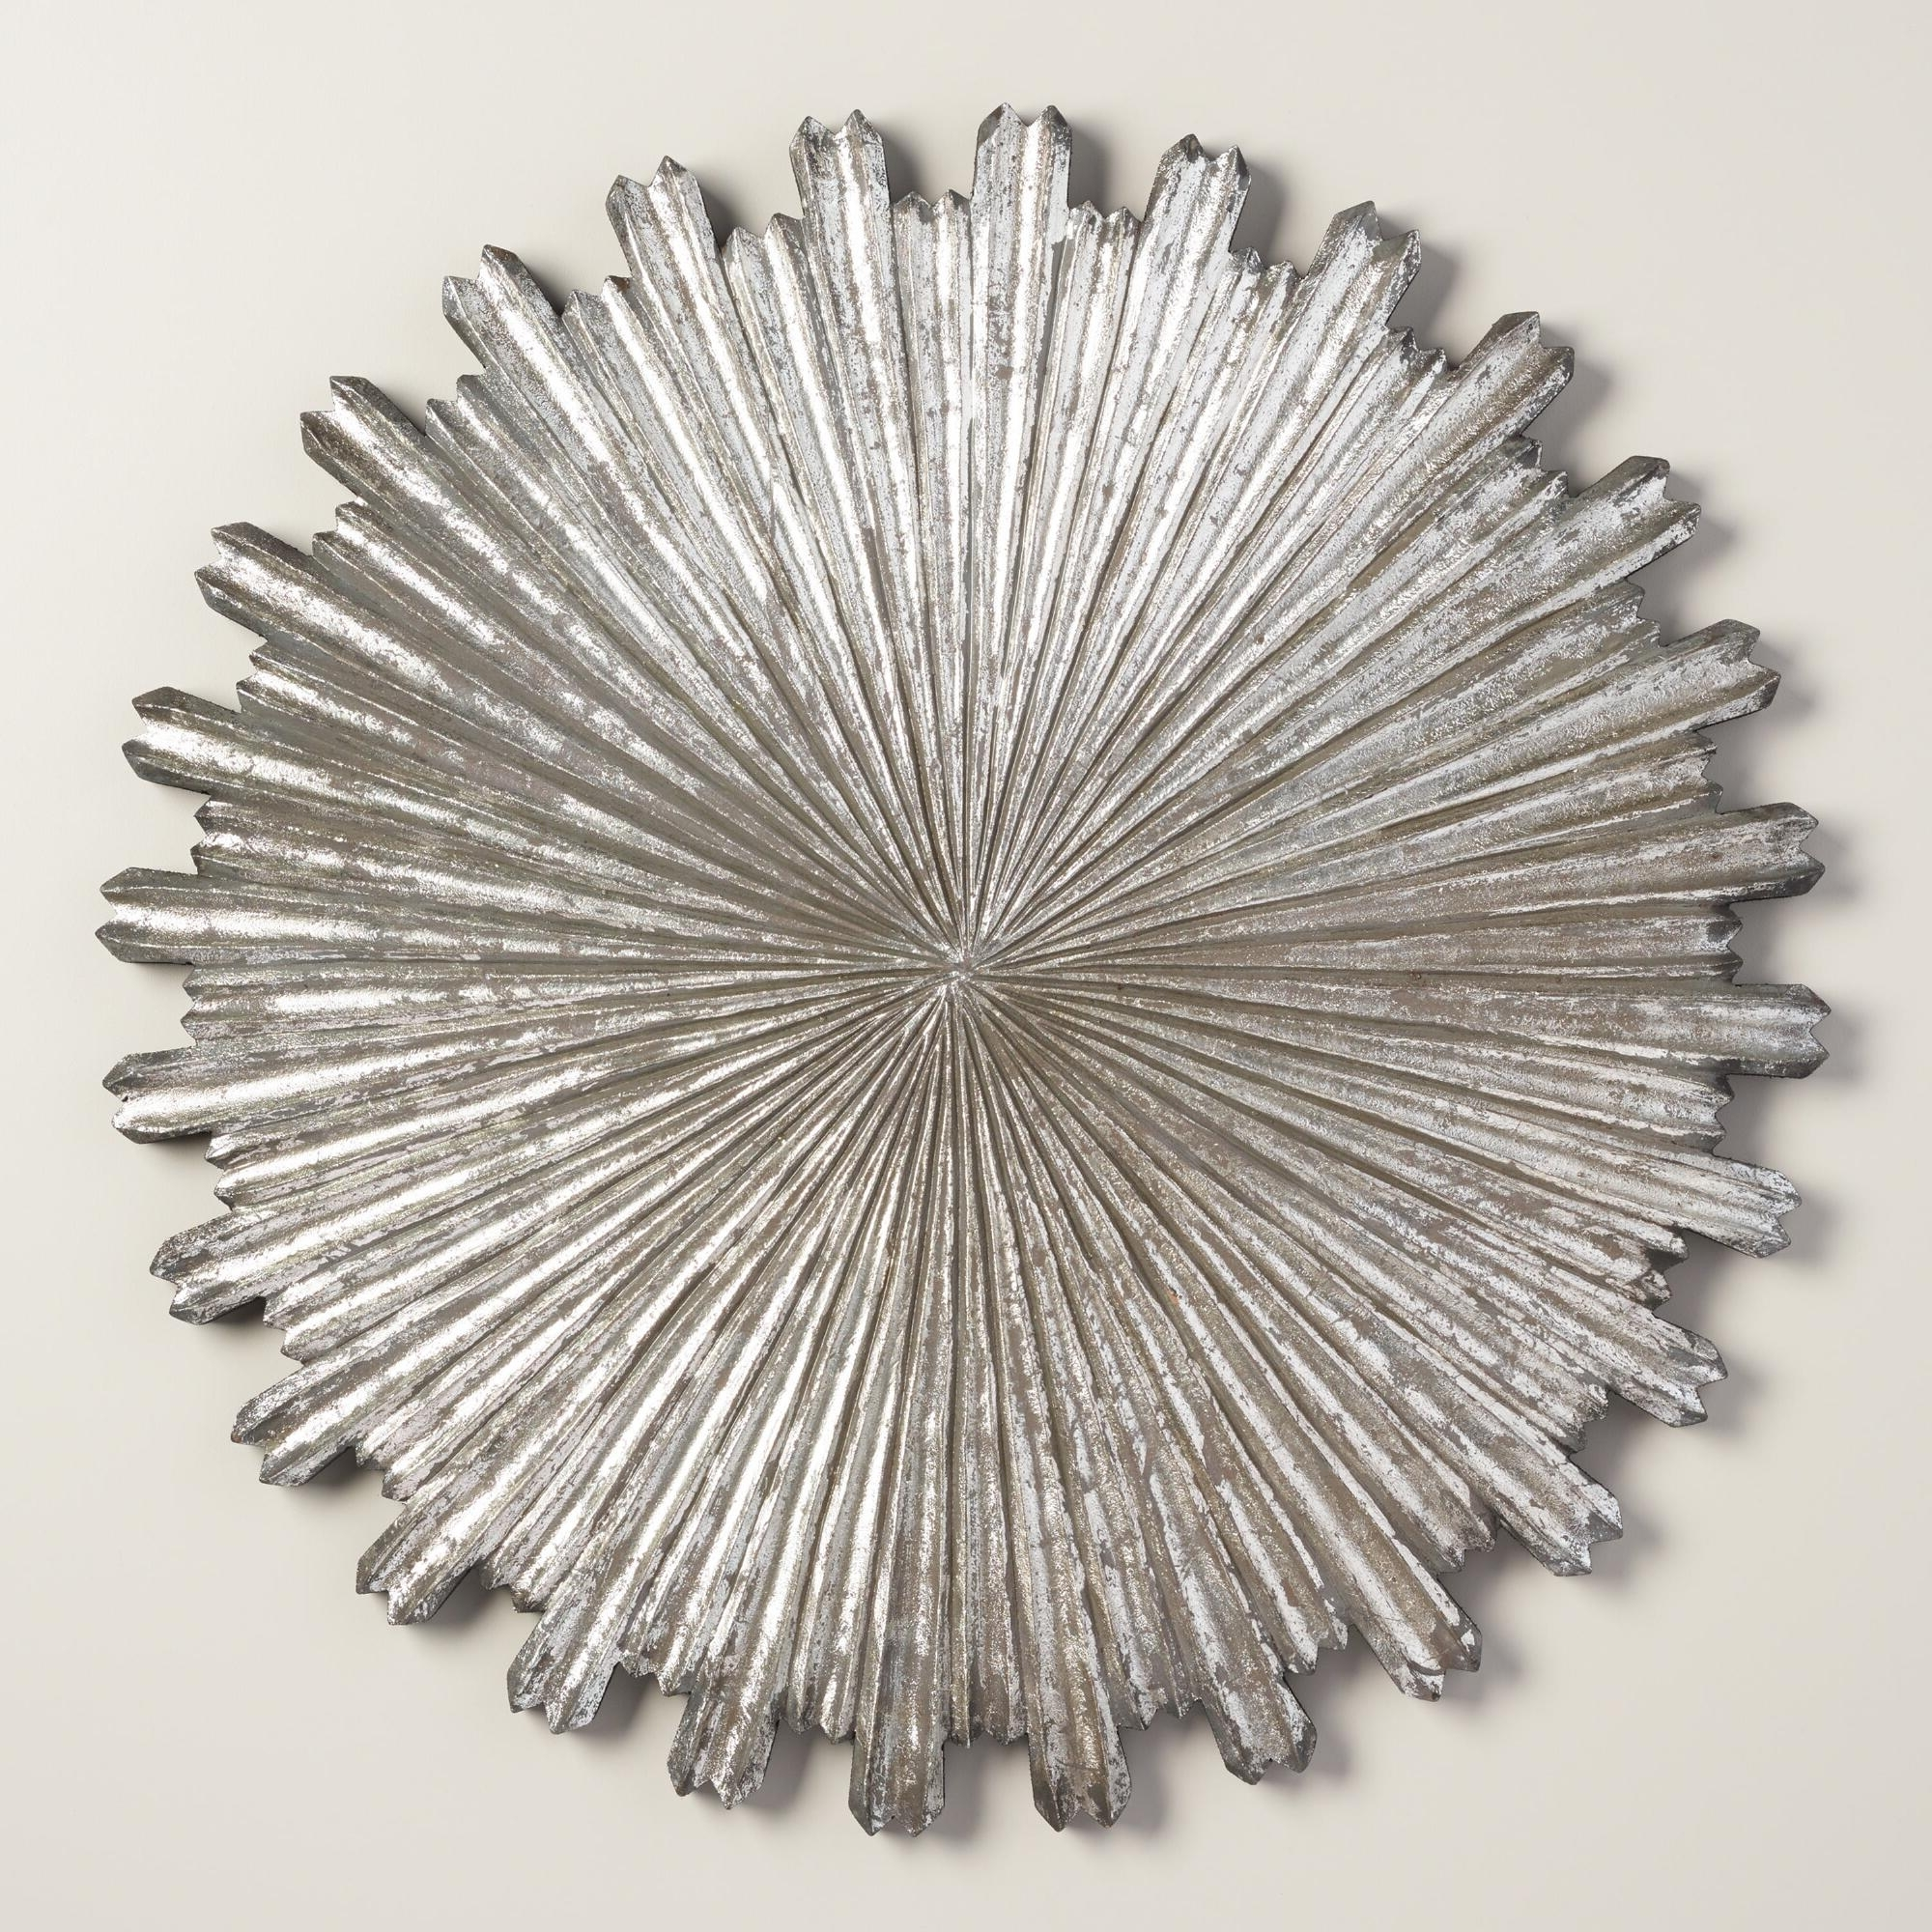 Wall Art Designs: Sunburst Wall Art Silver Wall Decor On Metal Regarding Most Recent Silver Starburst Wall Art (View 12 of 15)